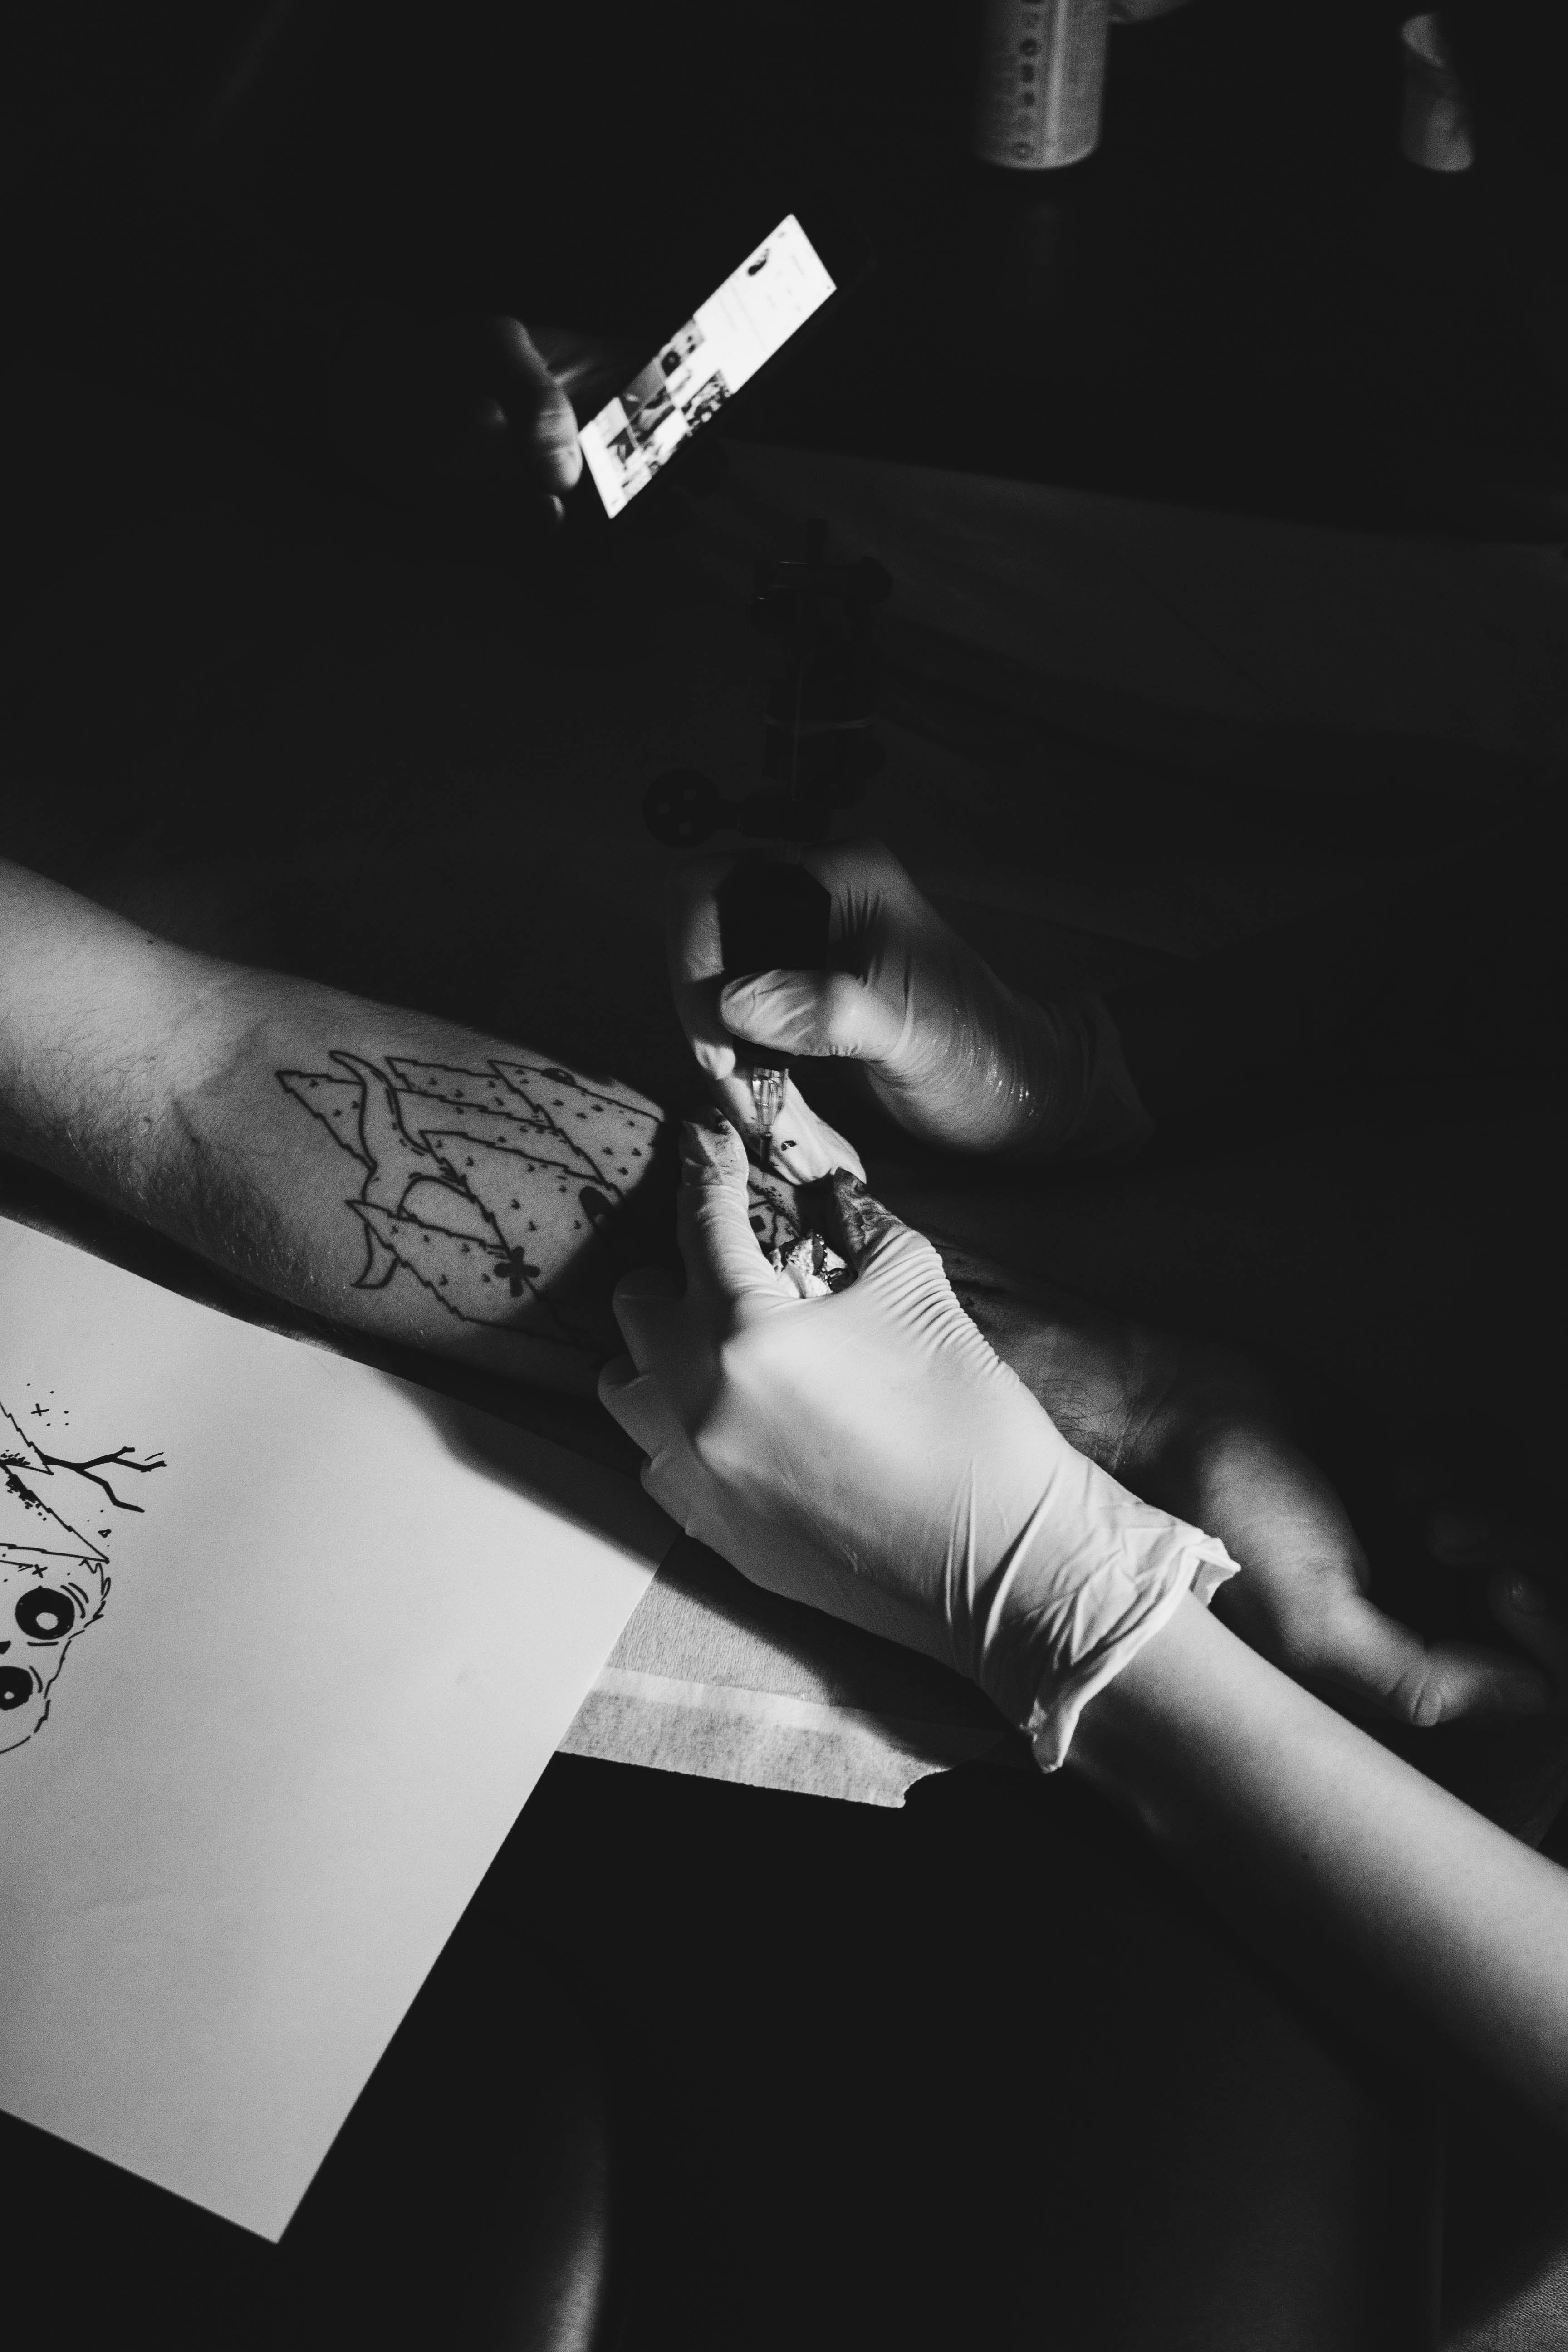 Person Doing Tattoo Session